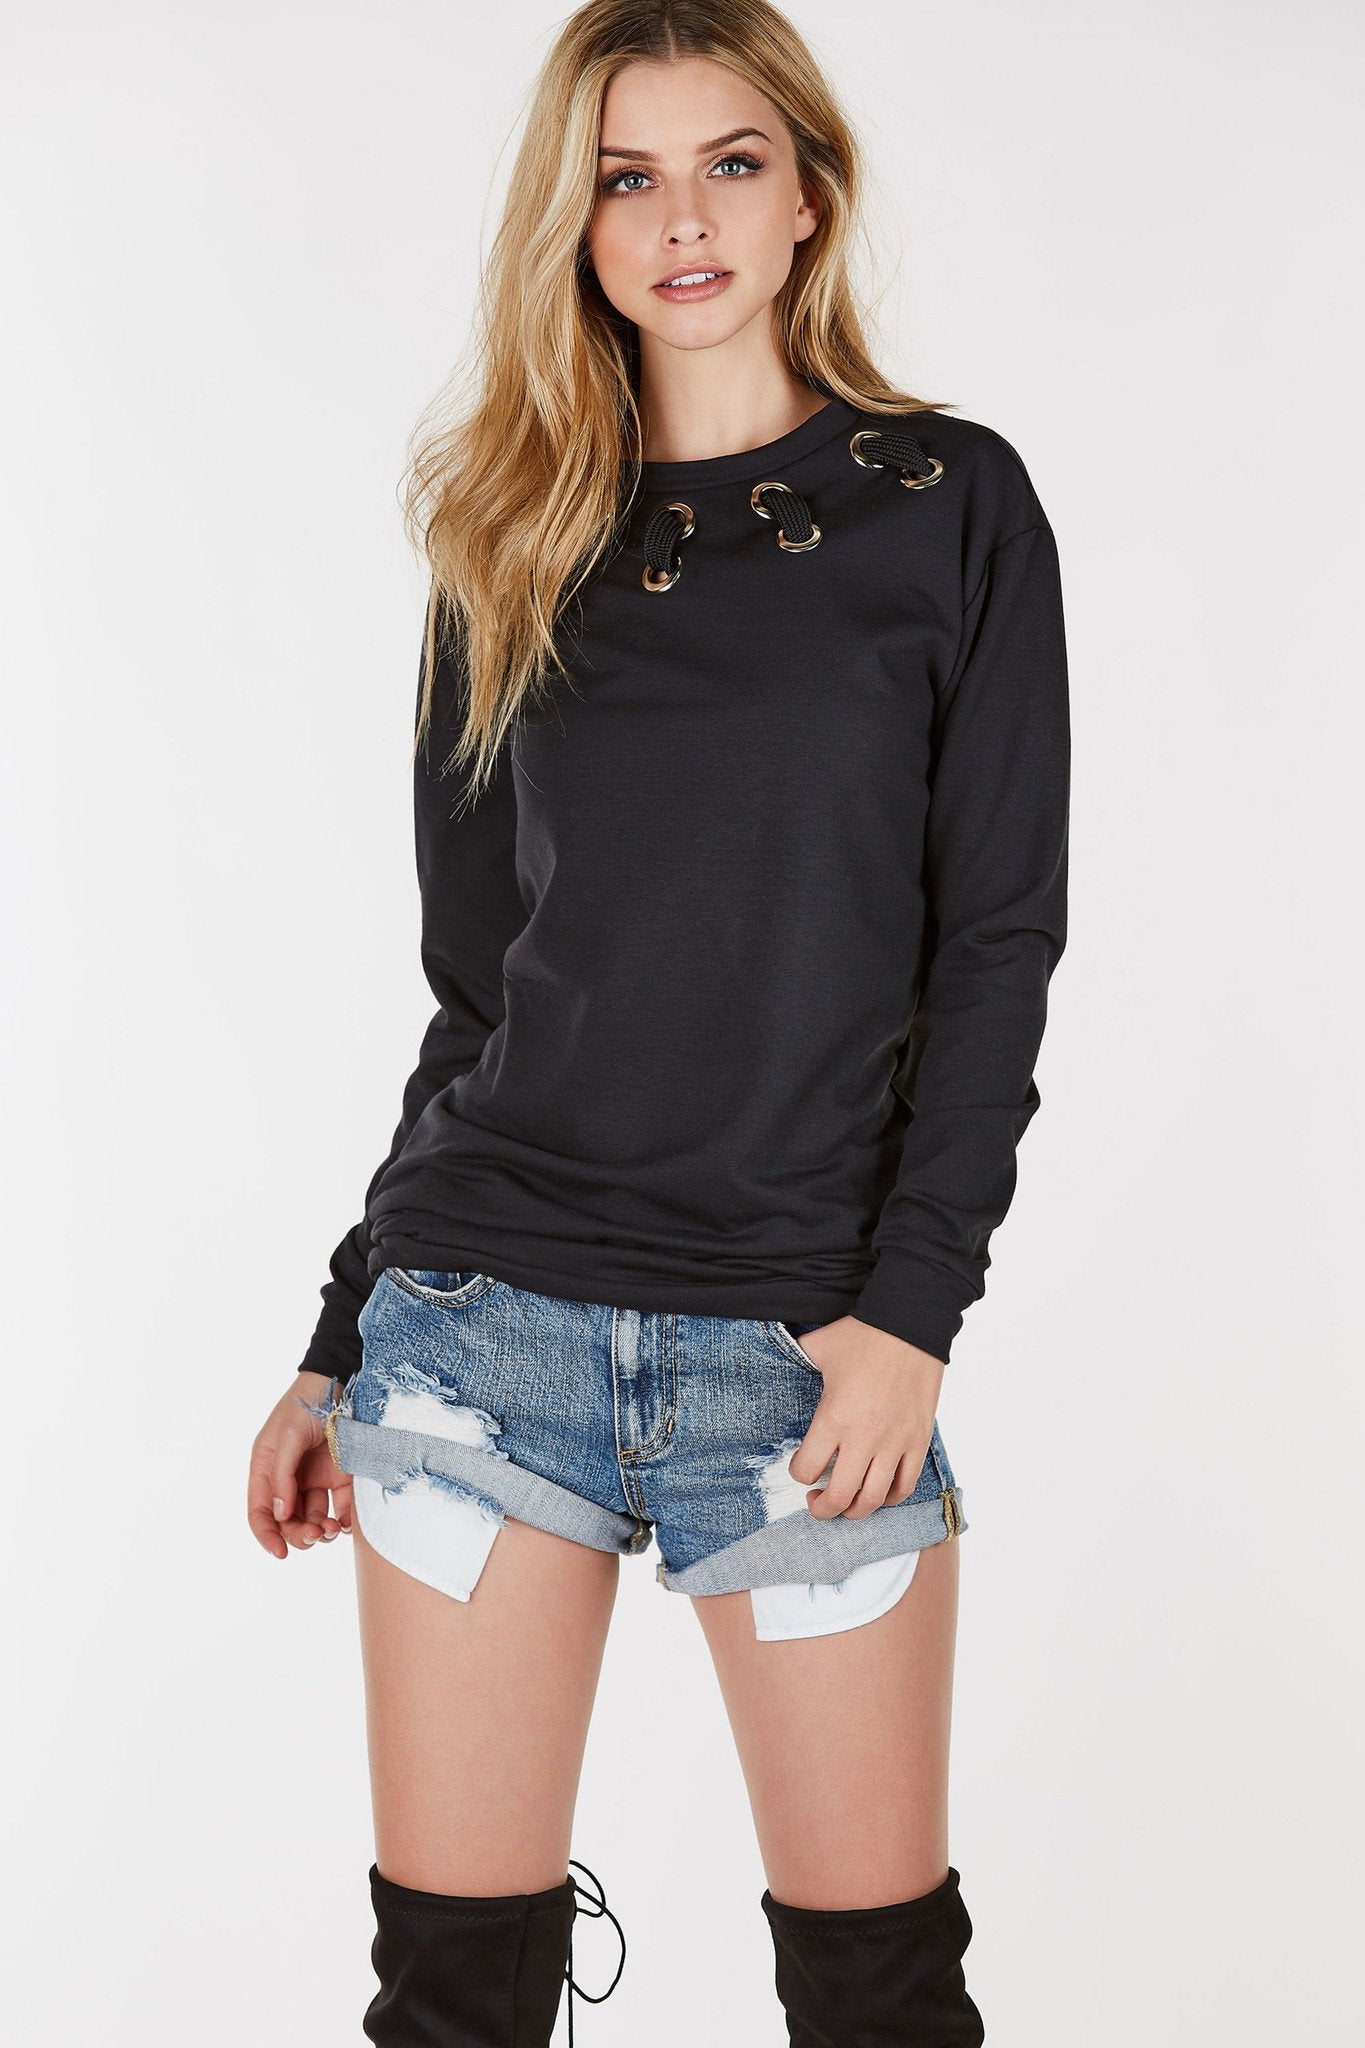 Round neck long sleeve sweater tunic with eyelet detailing and lace up design. Relaxed fit with straight hem all around.